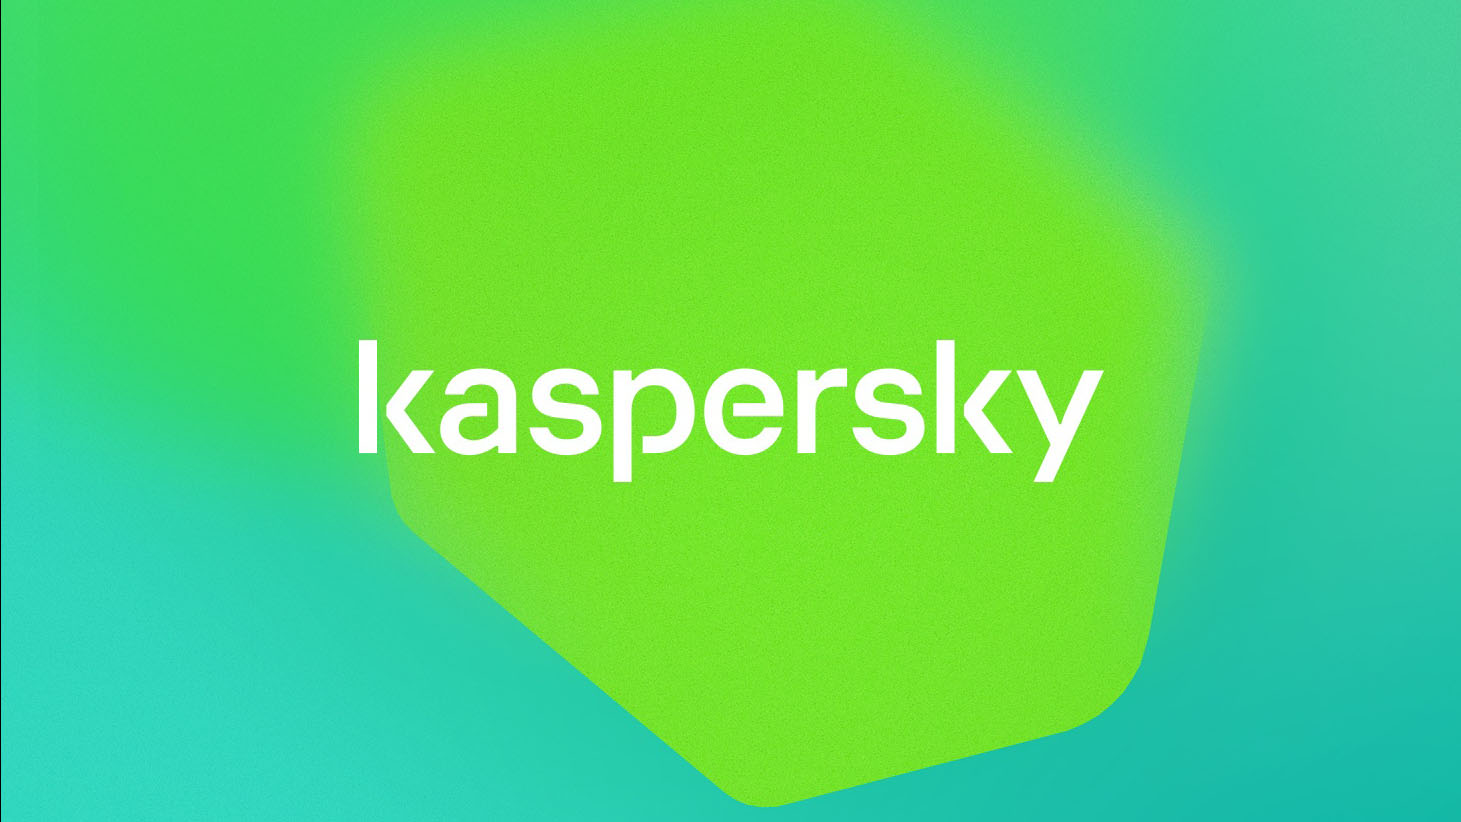 kaspersky antivirus free download 2012 full version with key for windows 7